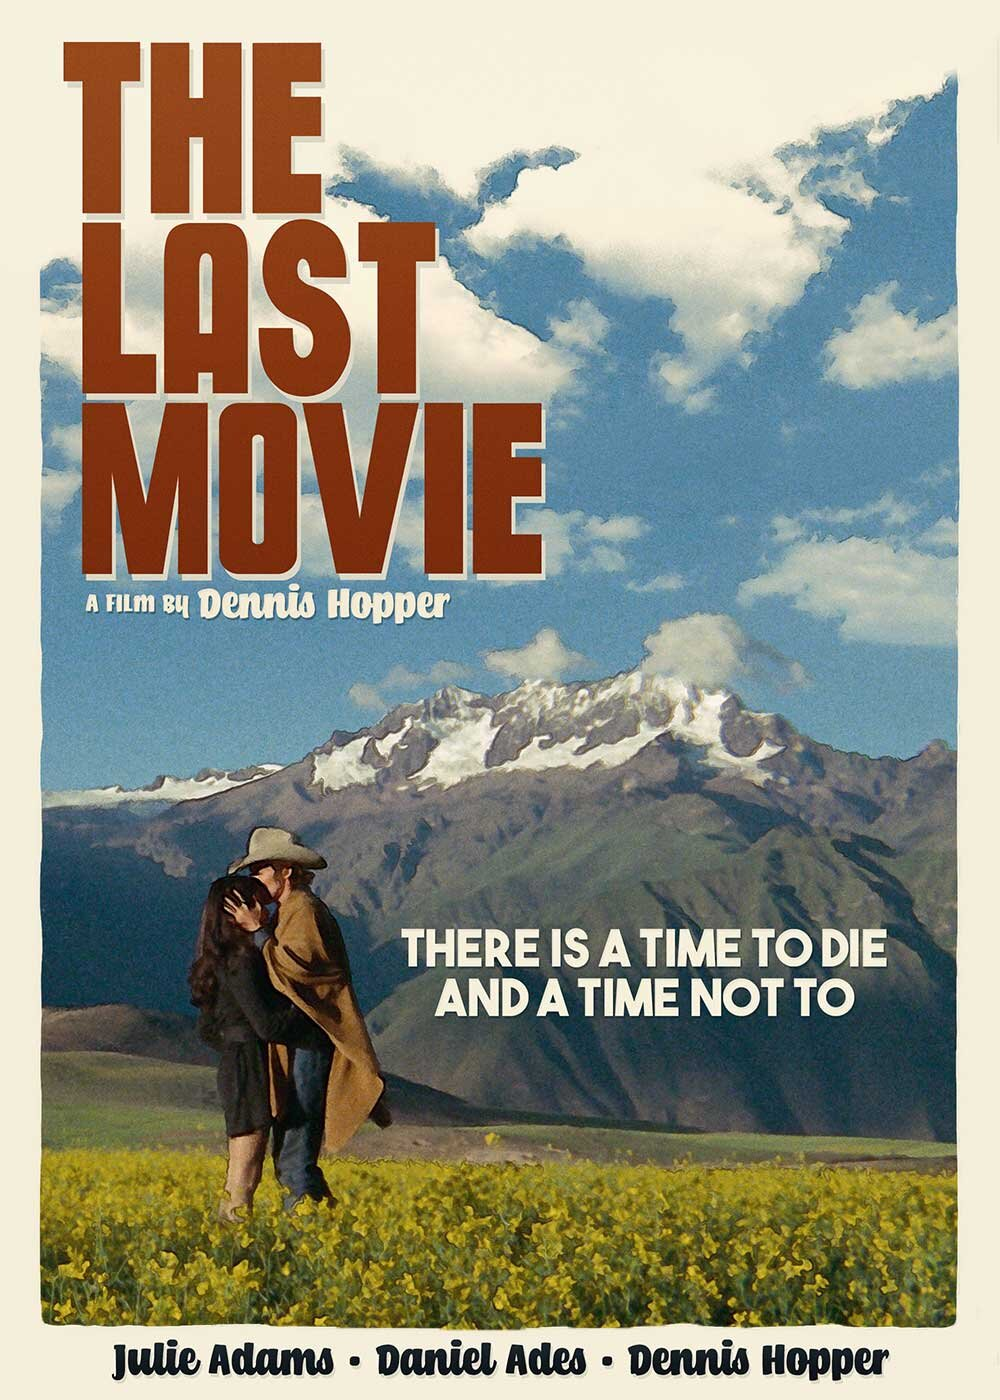 The Last Movie [Elektronisk resurs] / regi: Dennis Hopper.